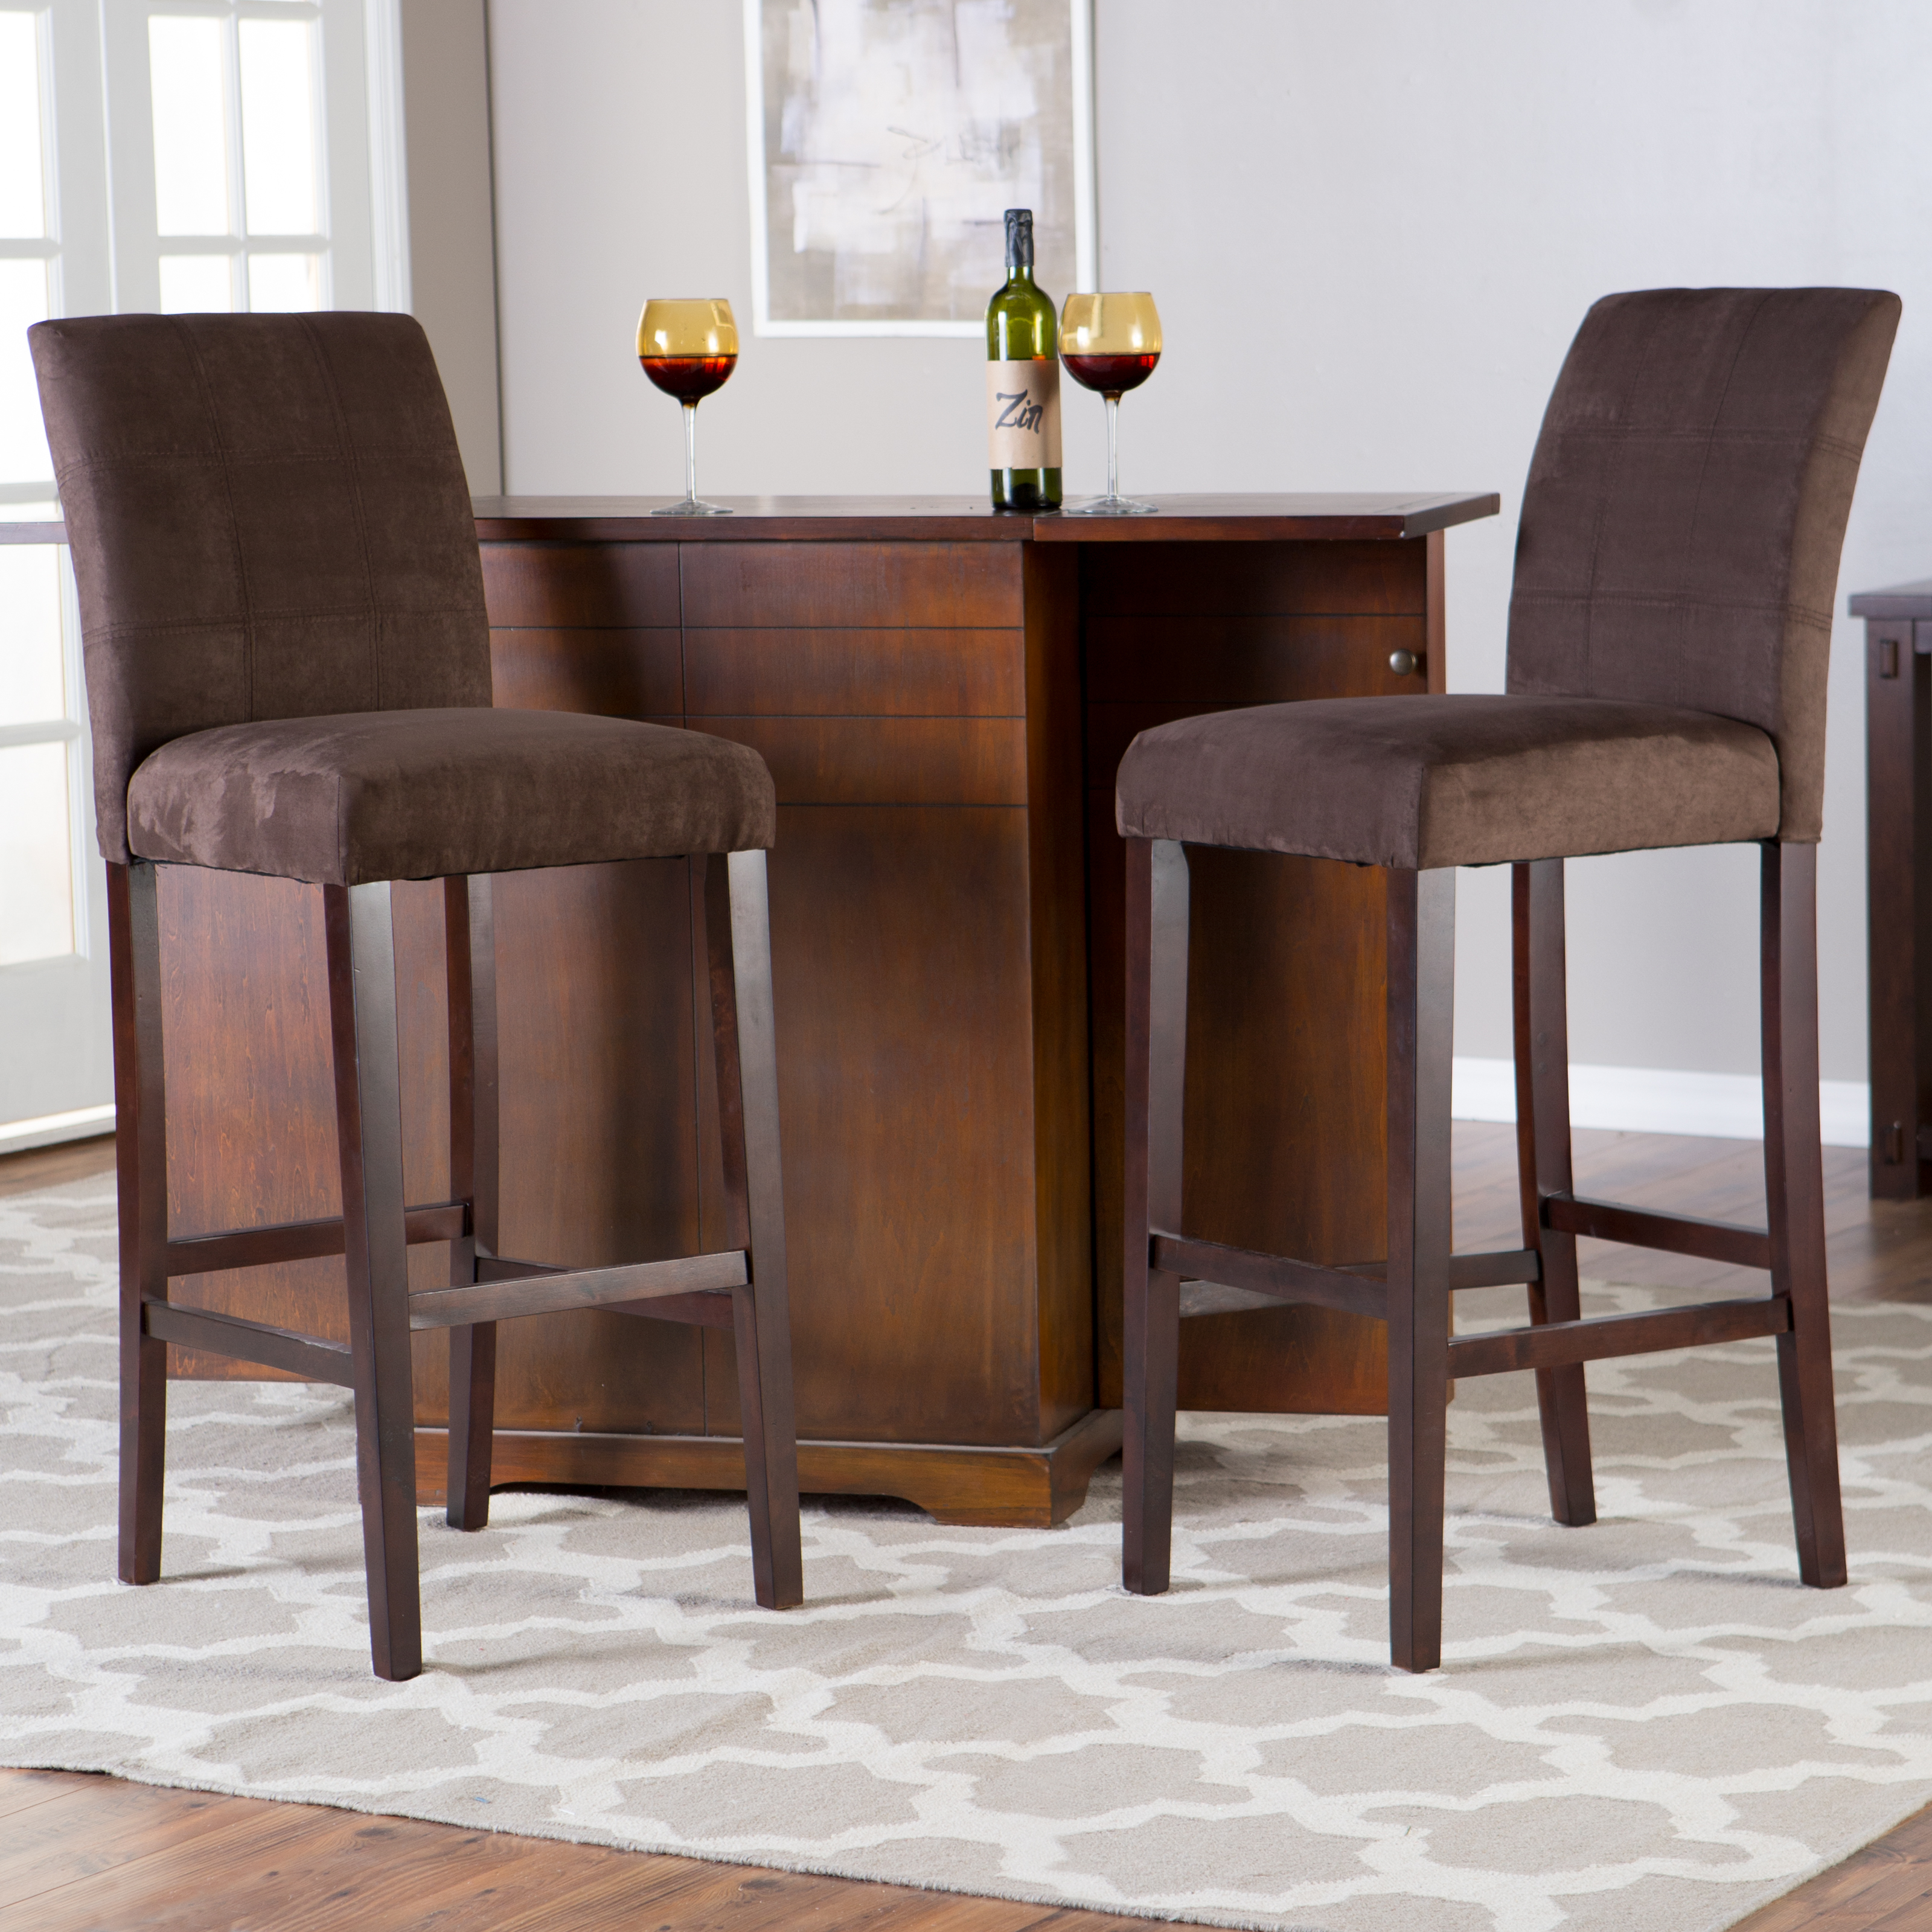 Palazzo Inch Extra Tall Bar Stool Set of 2 Bar Stools at Hayneedle